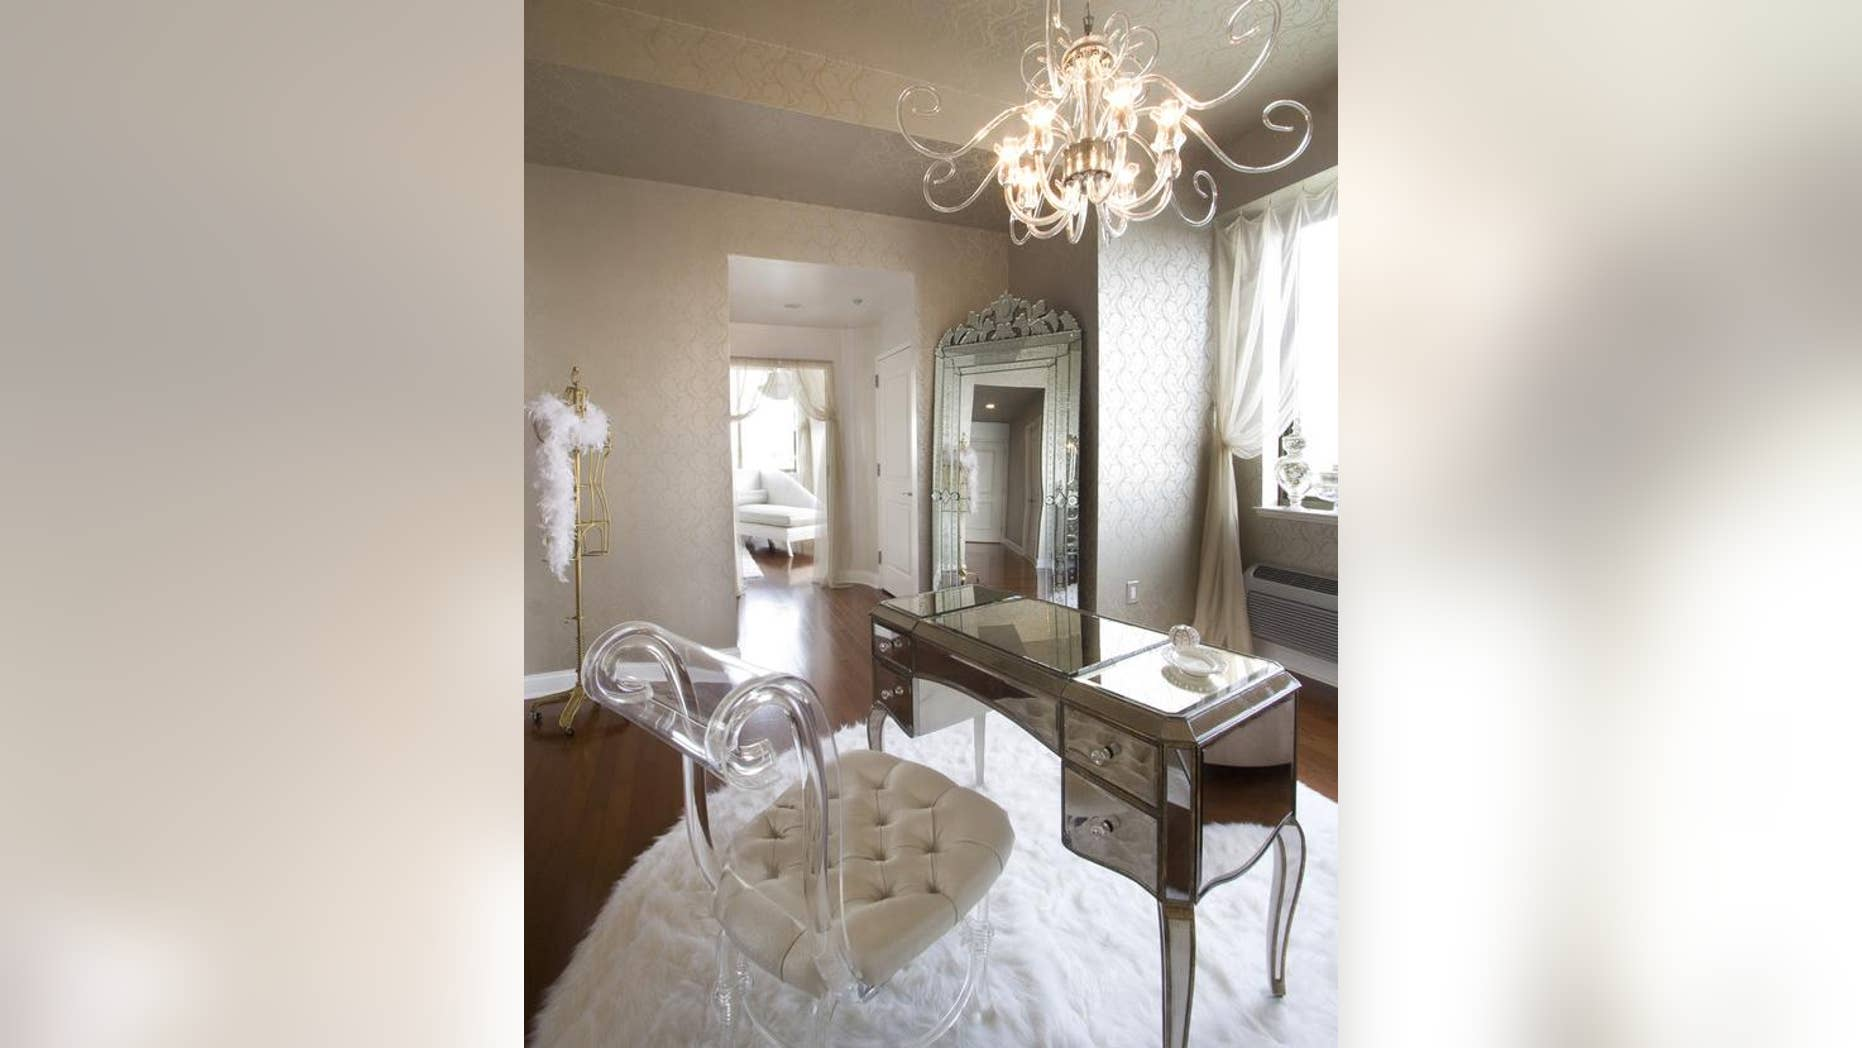 The dos and donts of decorating with mirrors